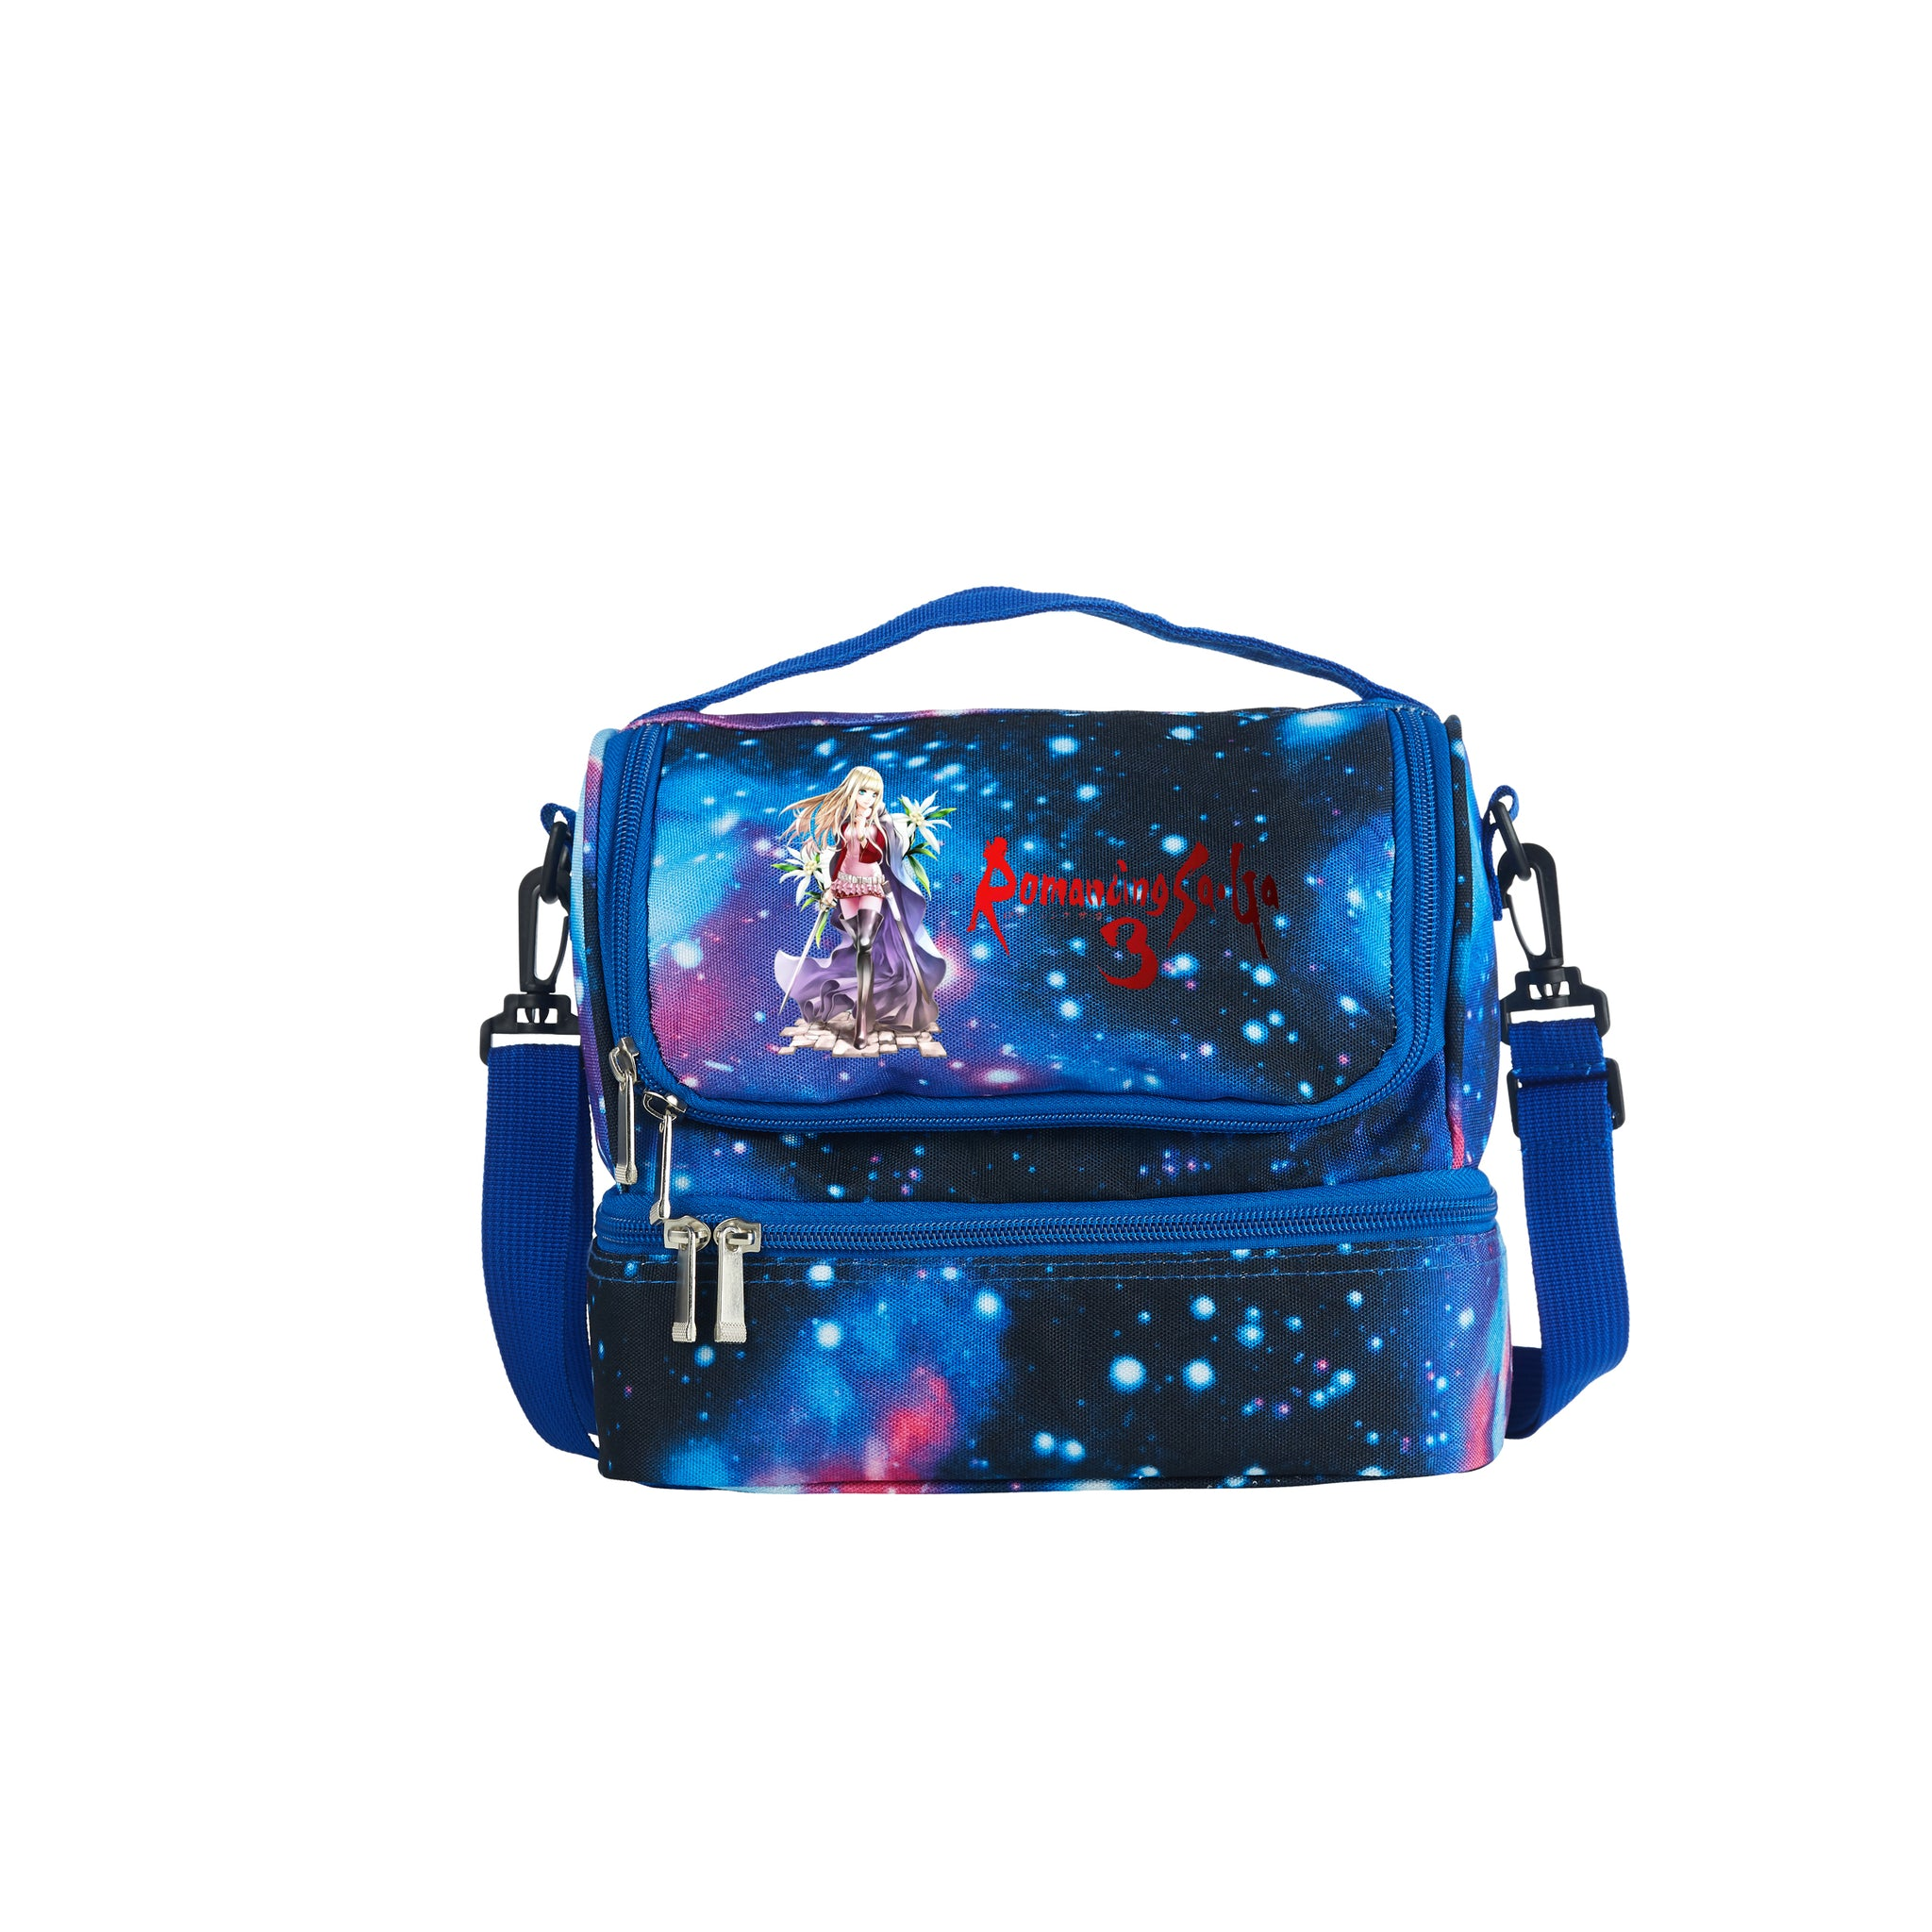 Romancing SaGa Boys Girls Durable Two Compartment Blue Galaxy Lunch Bag